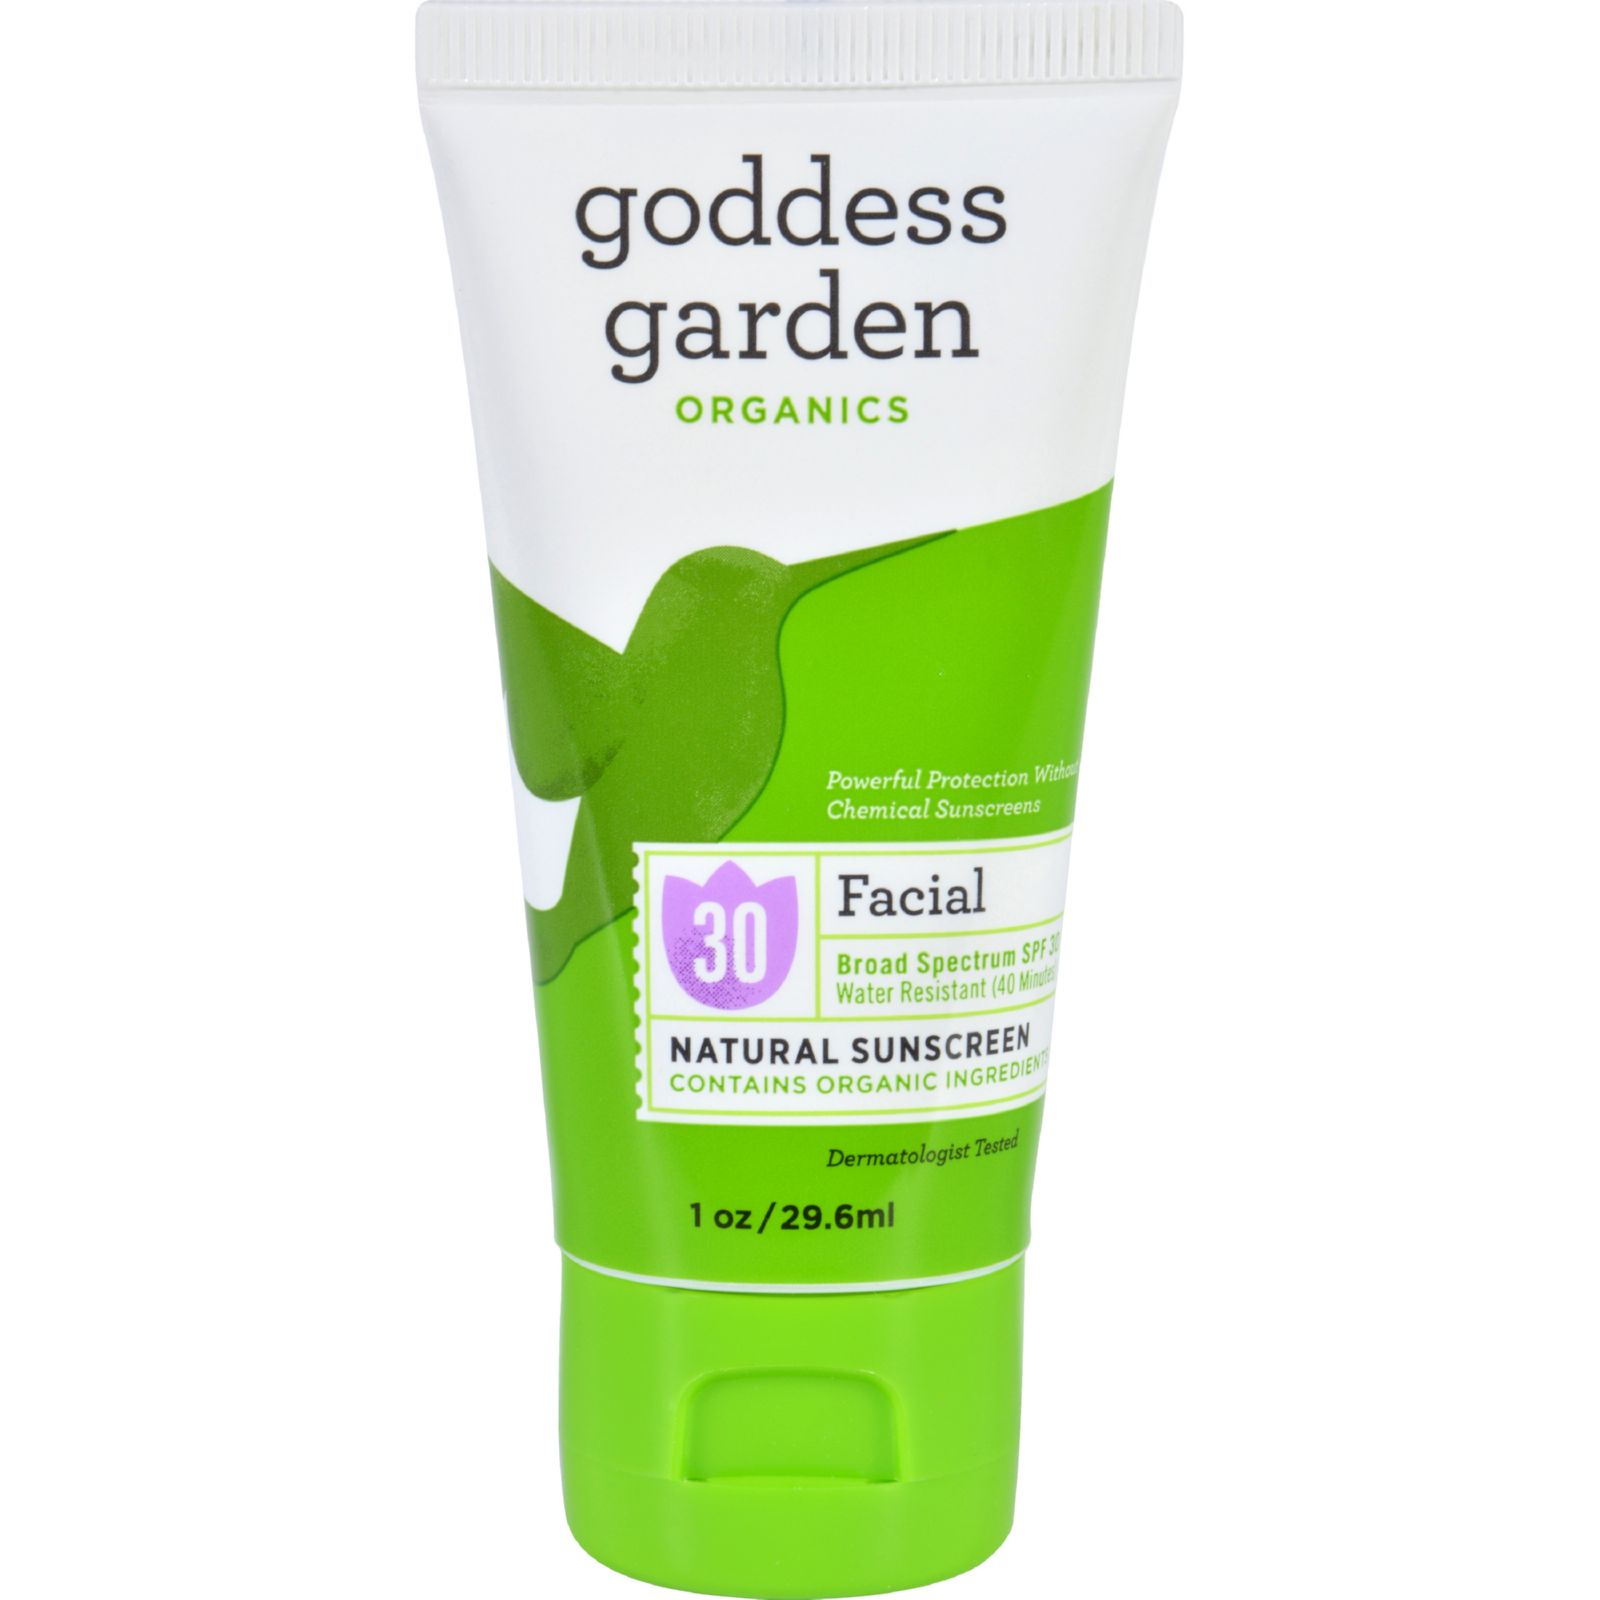 Goddess Garden Organic Sunscreen Counter Display - Facial - 1 Oz - Case Of 20